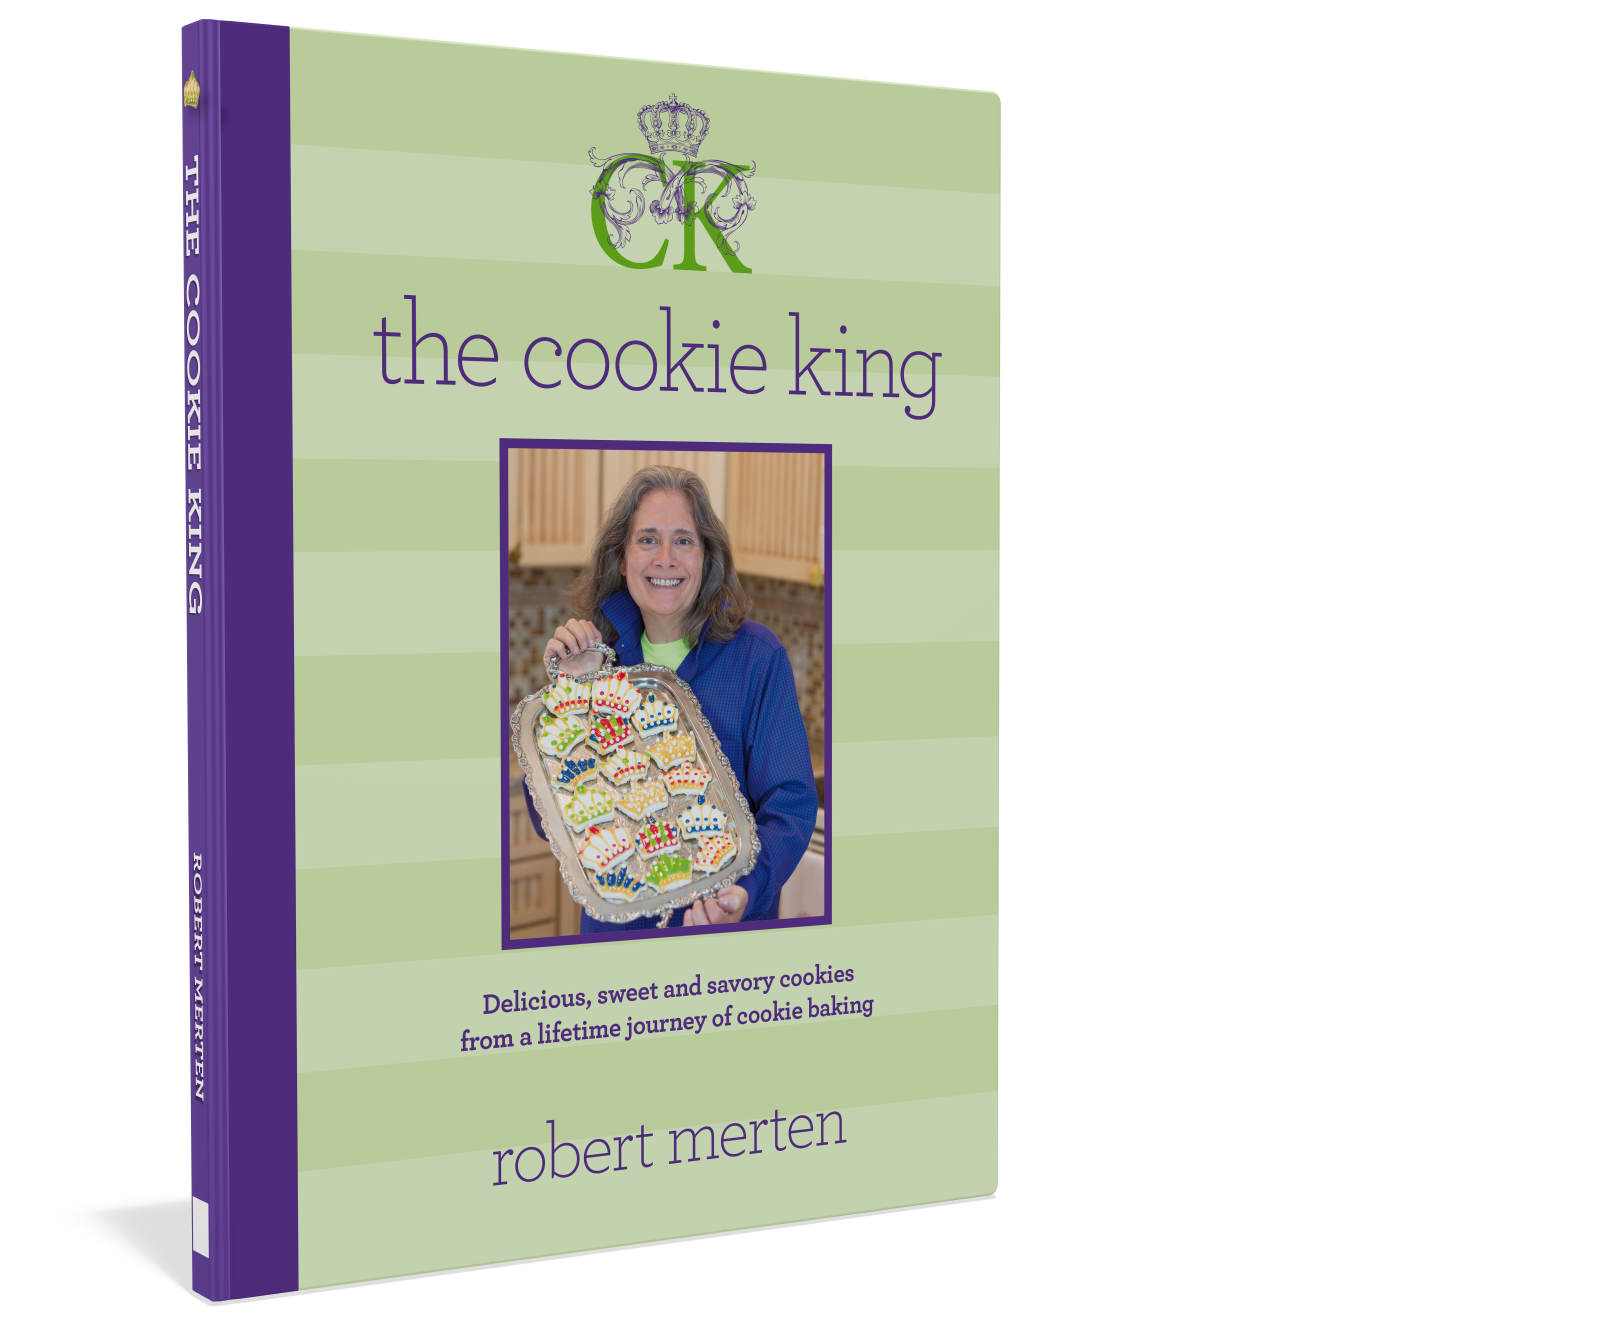 The Cookie King Cookbook: sweet and savory cookie recipes by Robert Merten Starbooks